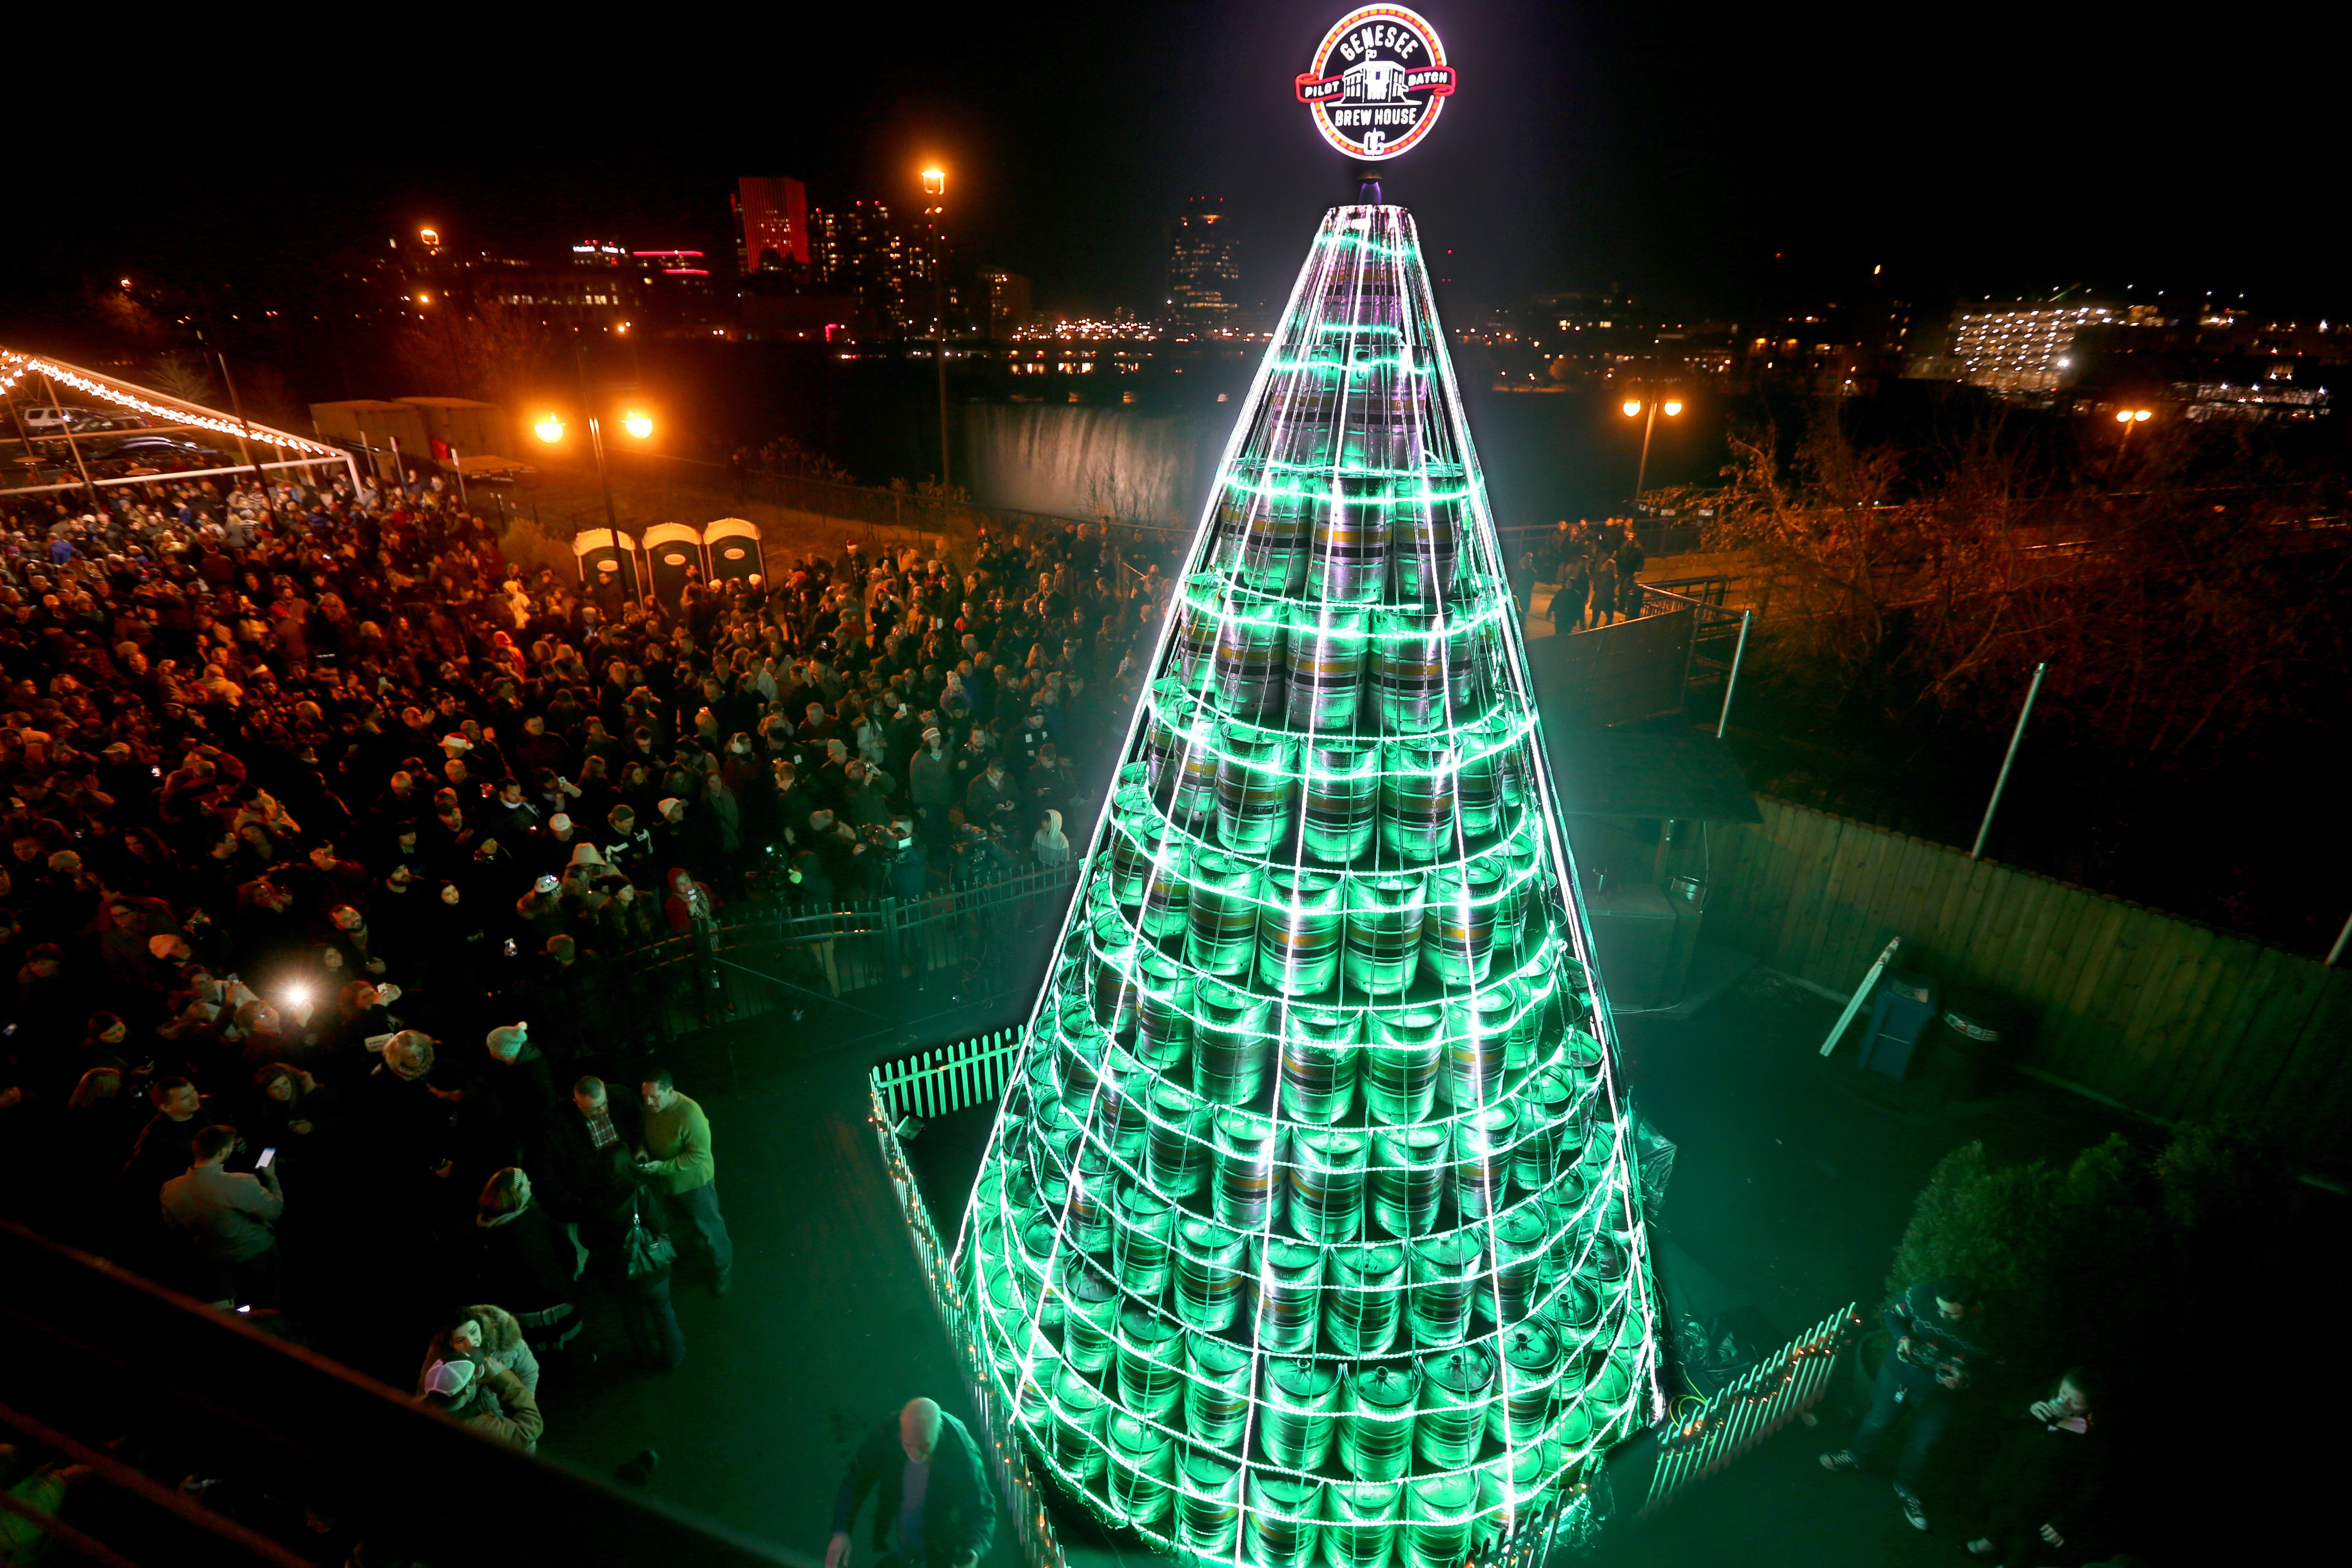 The annual holiday keg tree and the Genesee Brew House have really enriched the connection between the community and the brewery on St. Paul Street.